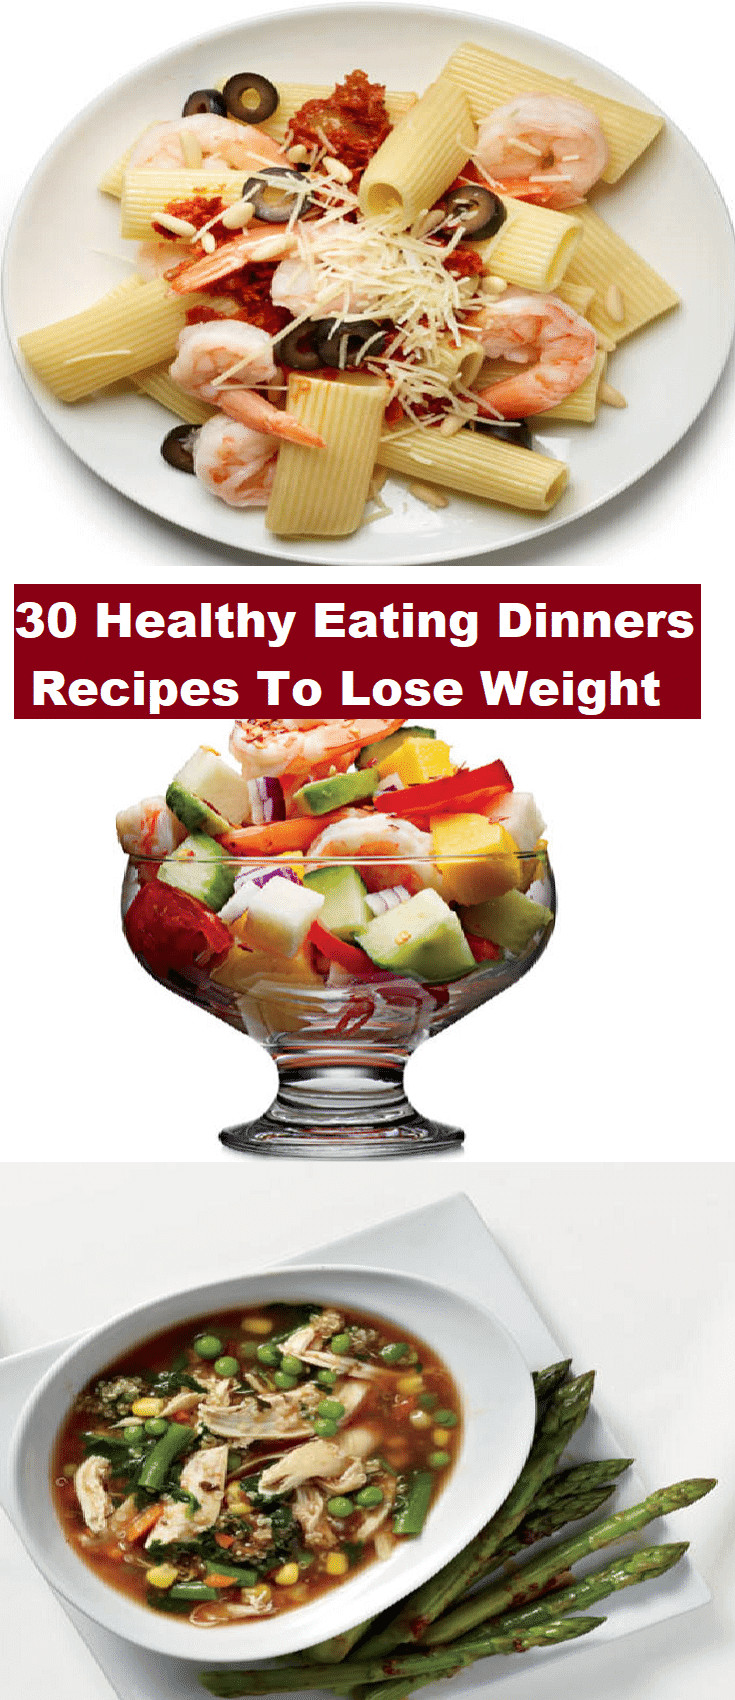 Healthy Dinners For Weight Loss  30 Healthy Eating Dinners Recipes To Lose Weight Healthy